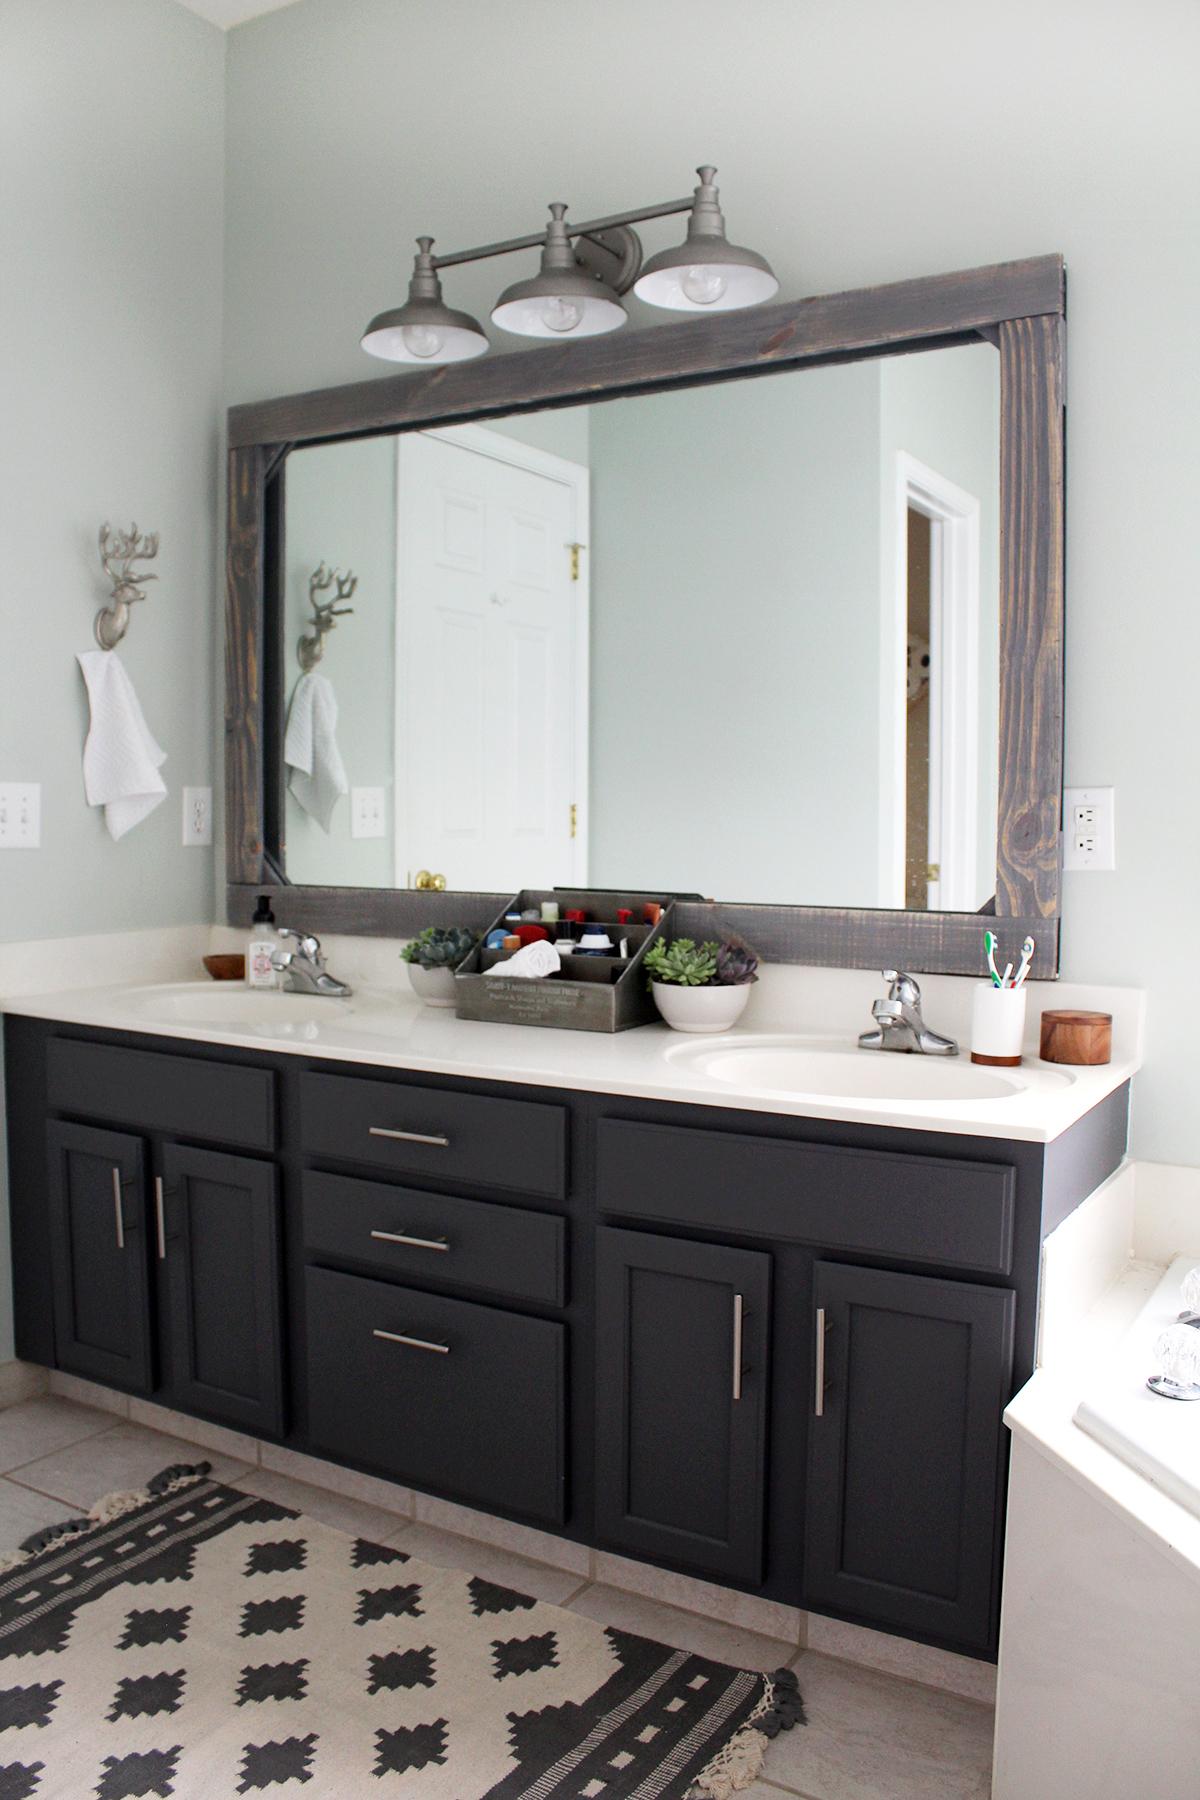 $300 Master Bathroom Remodel | Top 10 Articles of the Year on Tag & Tibby